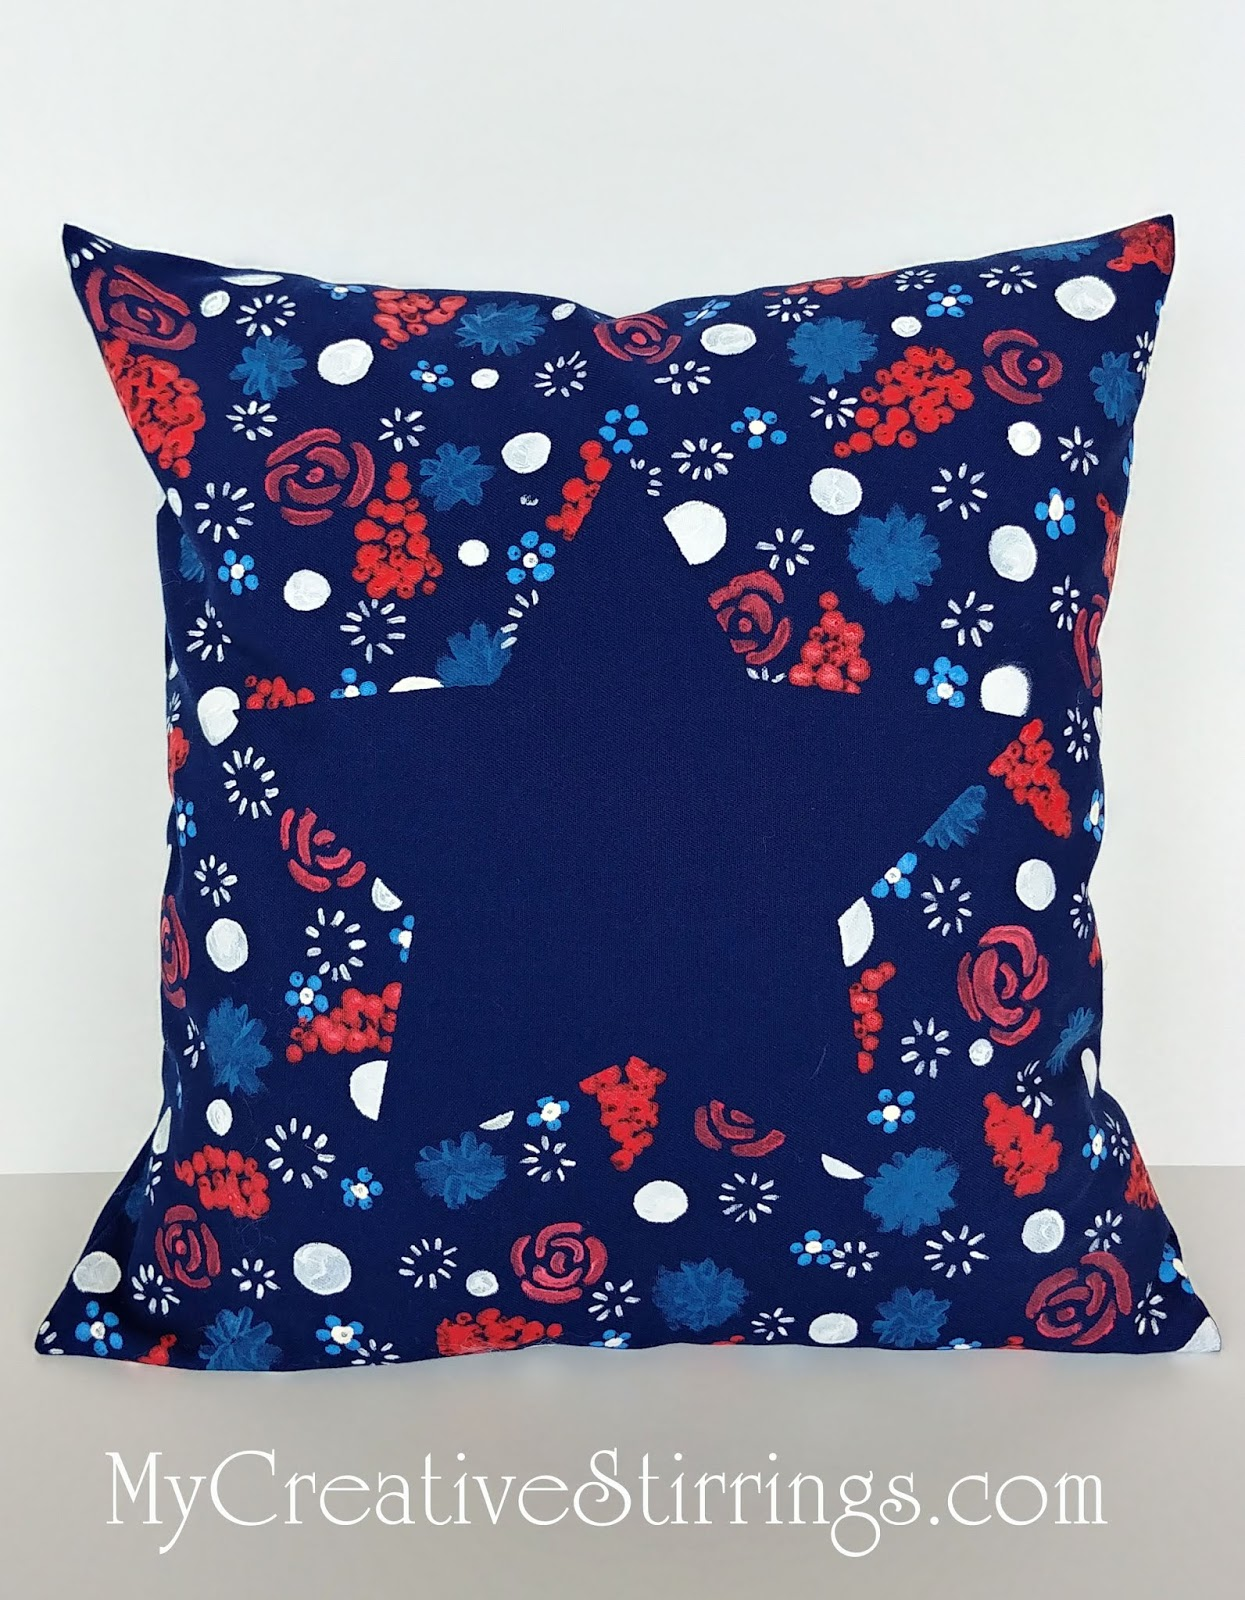 This Pillows Basic Design Floated Into My Brain One Fine